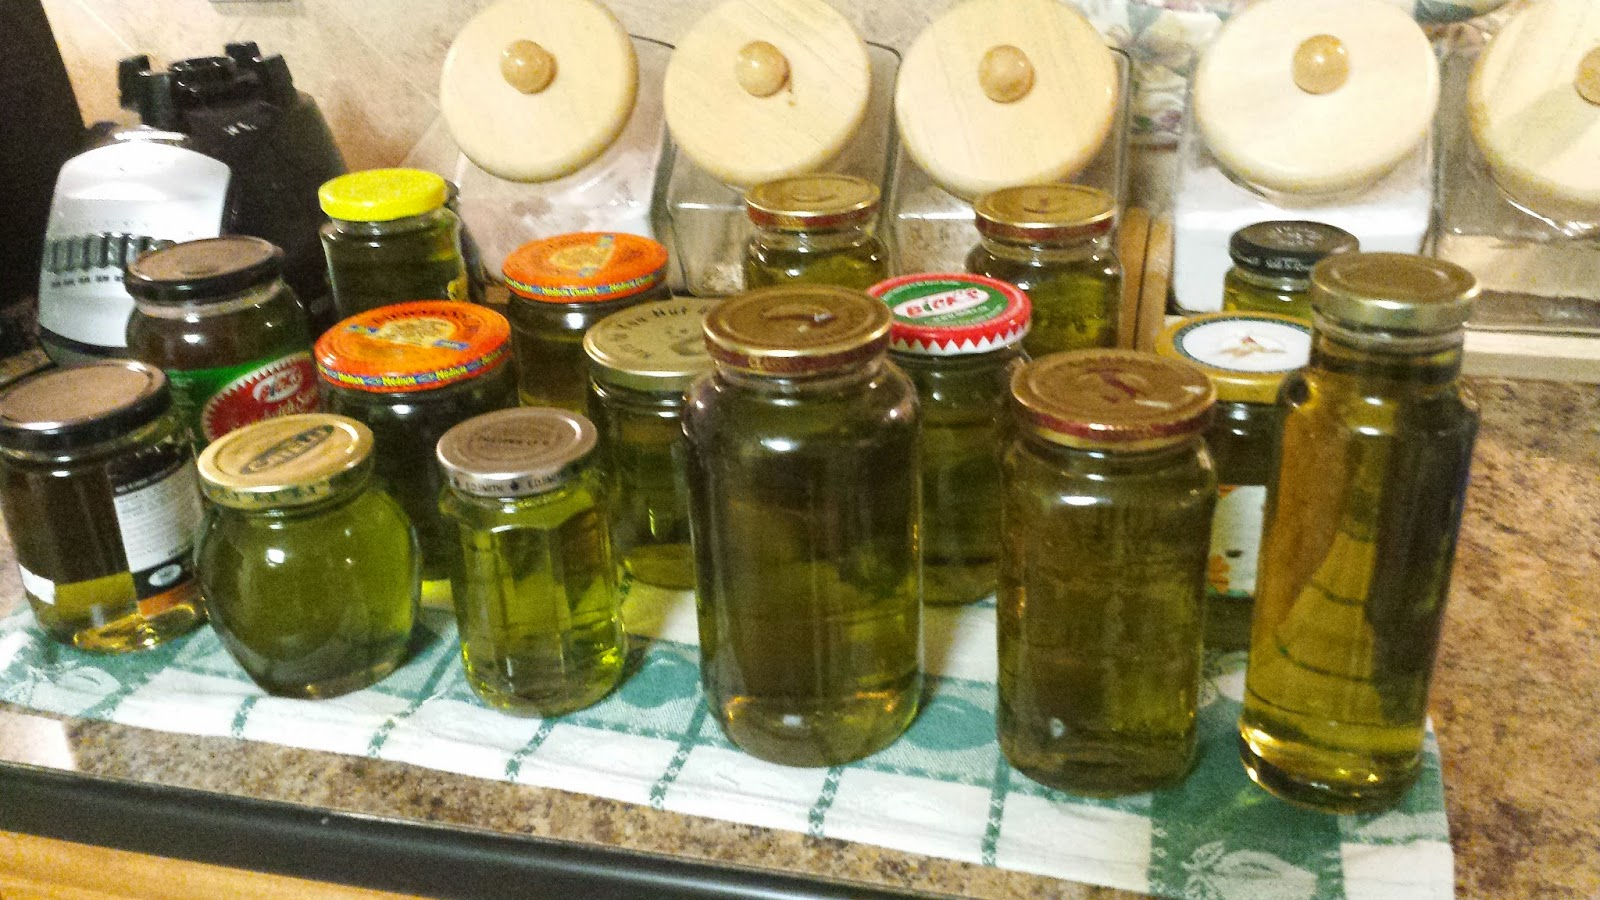 Jars of homemade mint syrup.